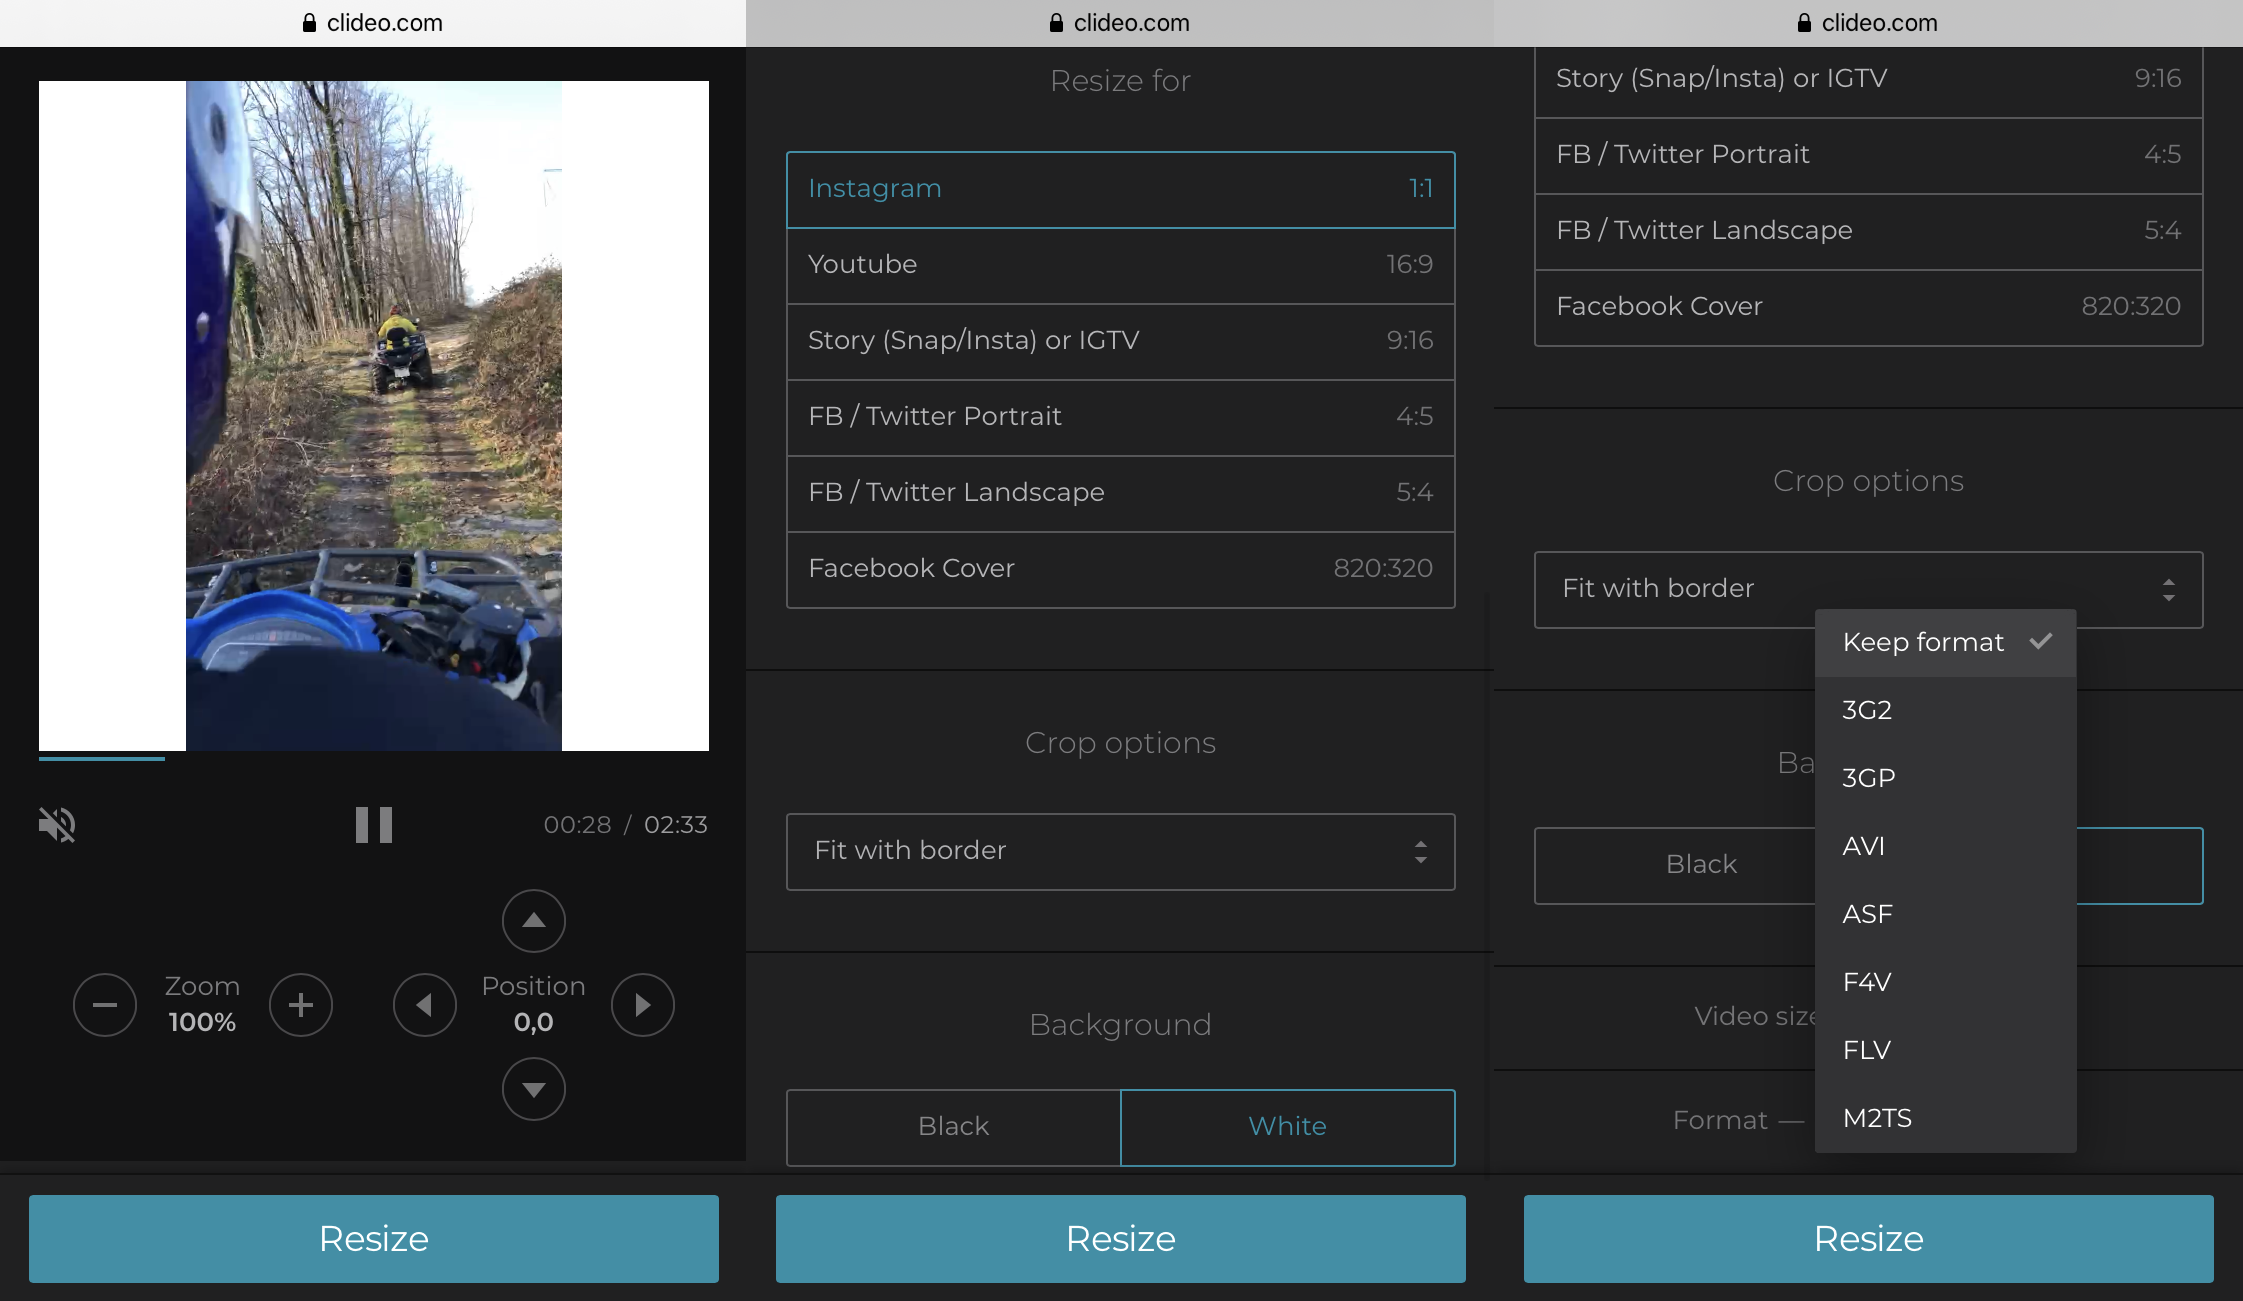 Resize video to fit Instagram by choosing 1:1 option